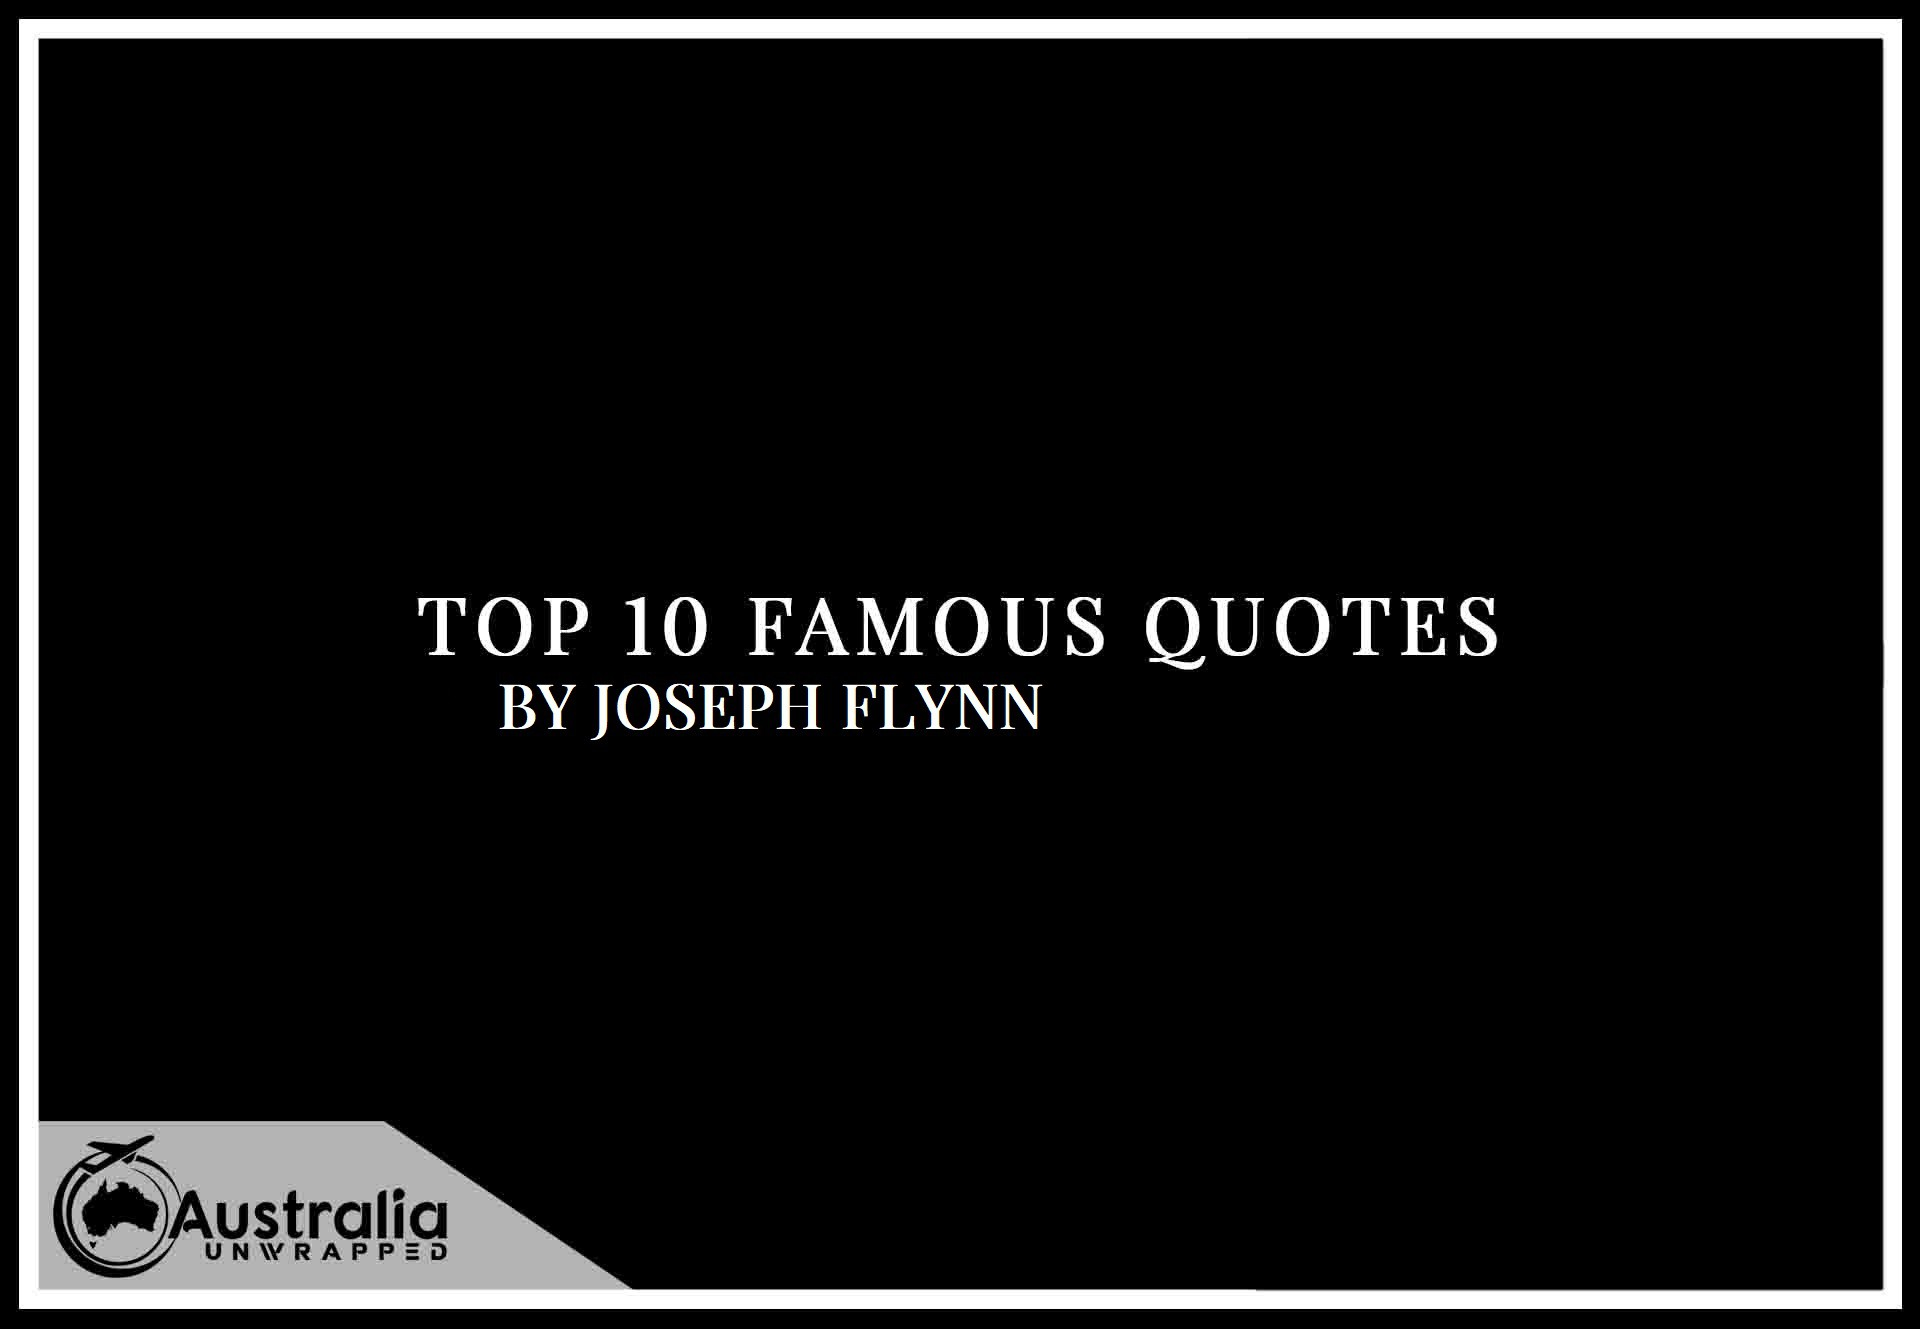 Top 10 Famous Quotes by Author Joseph Flynn